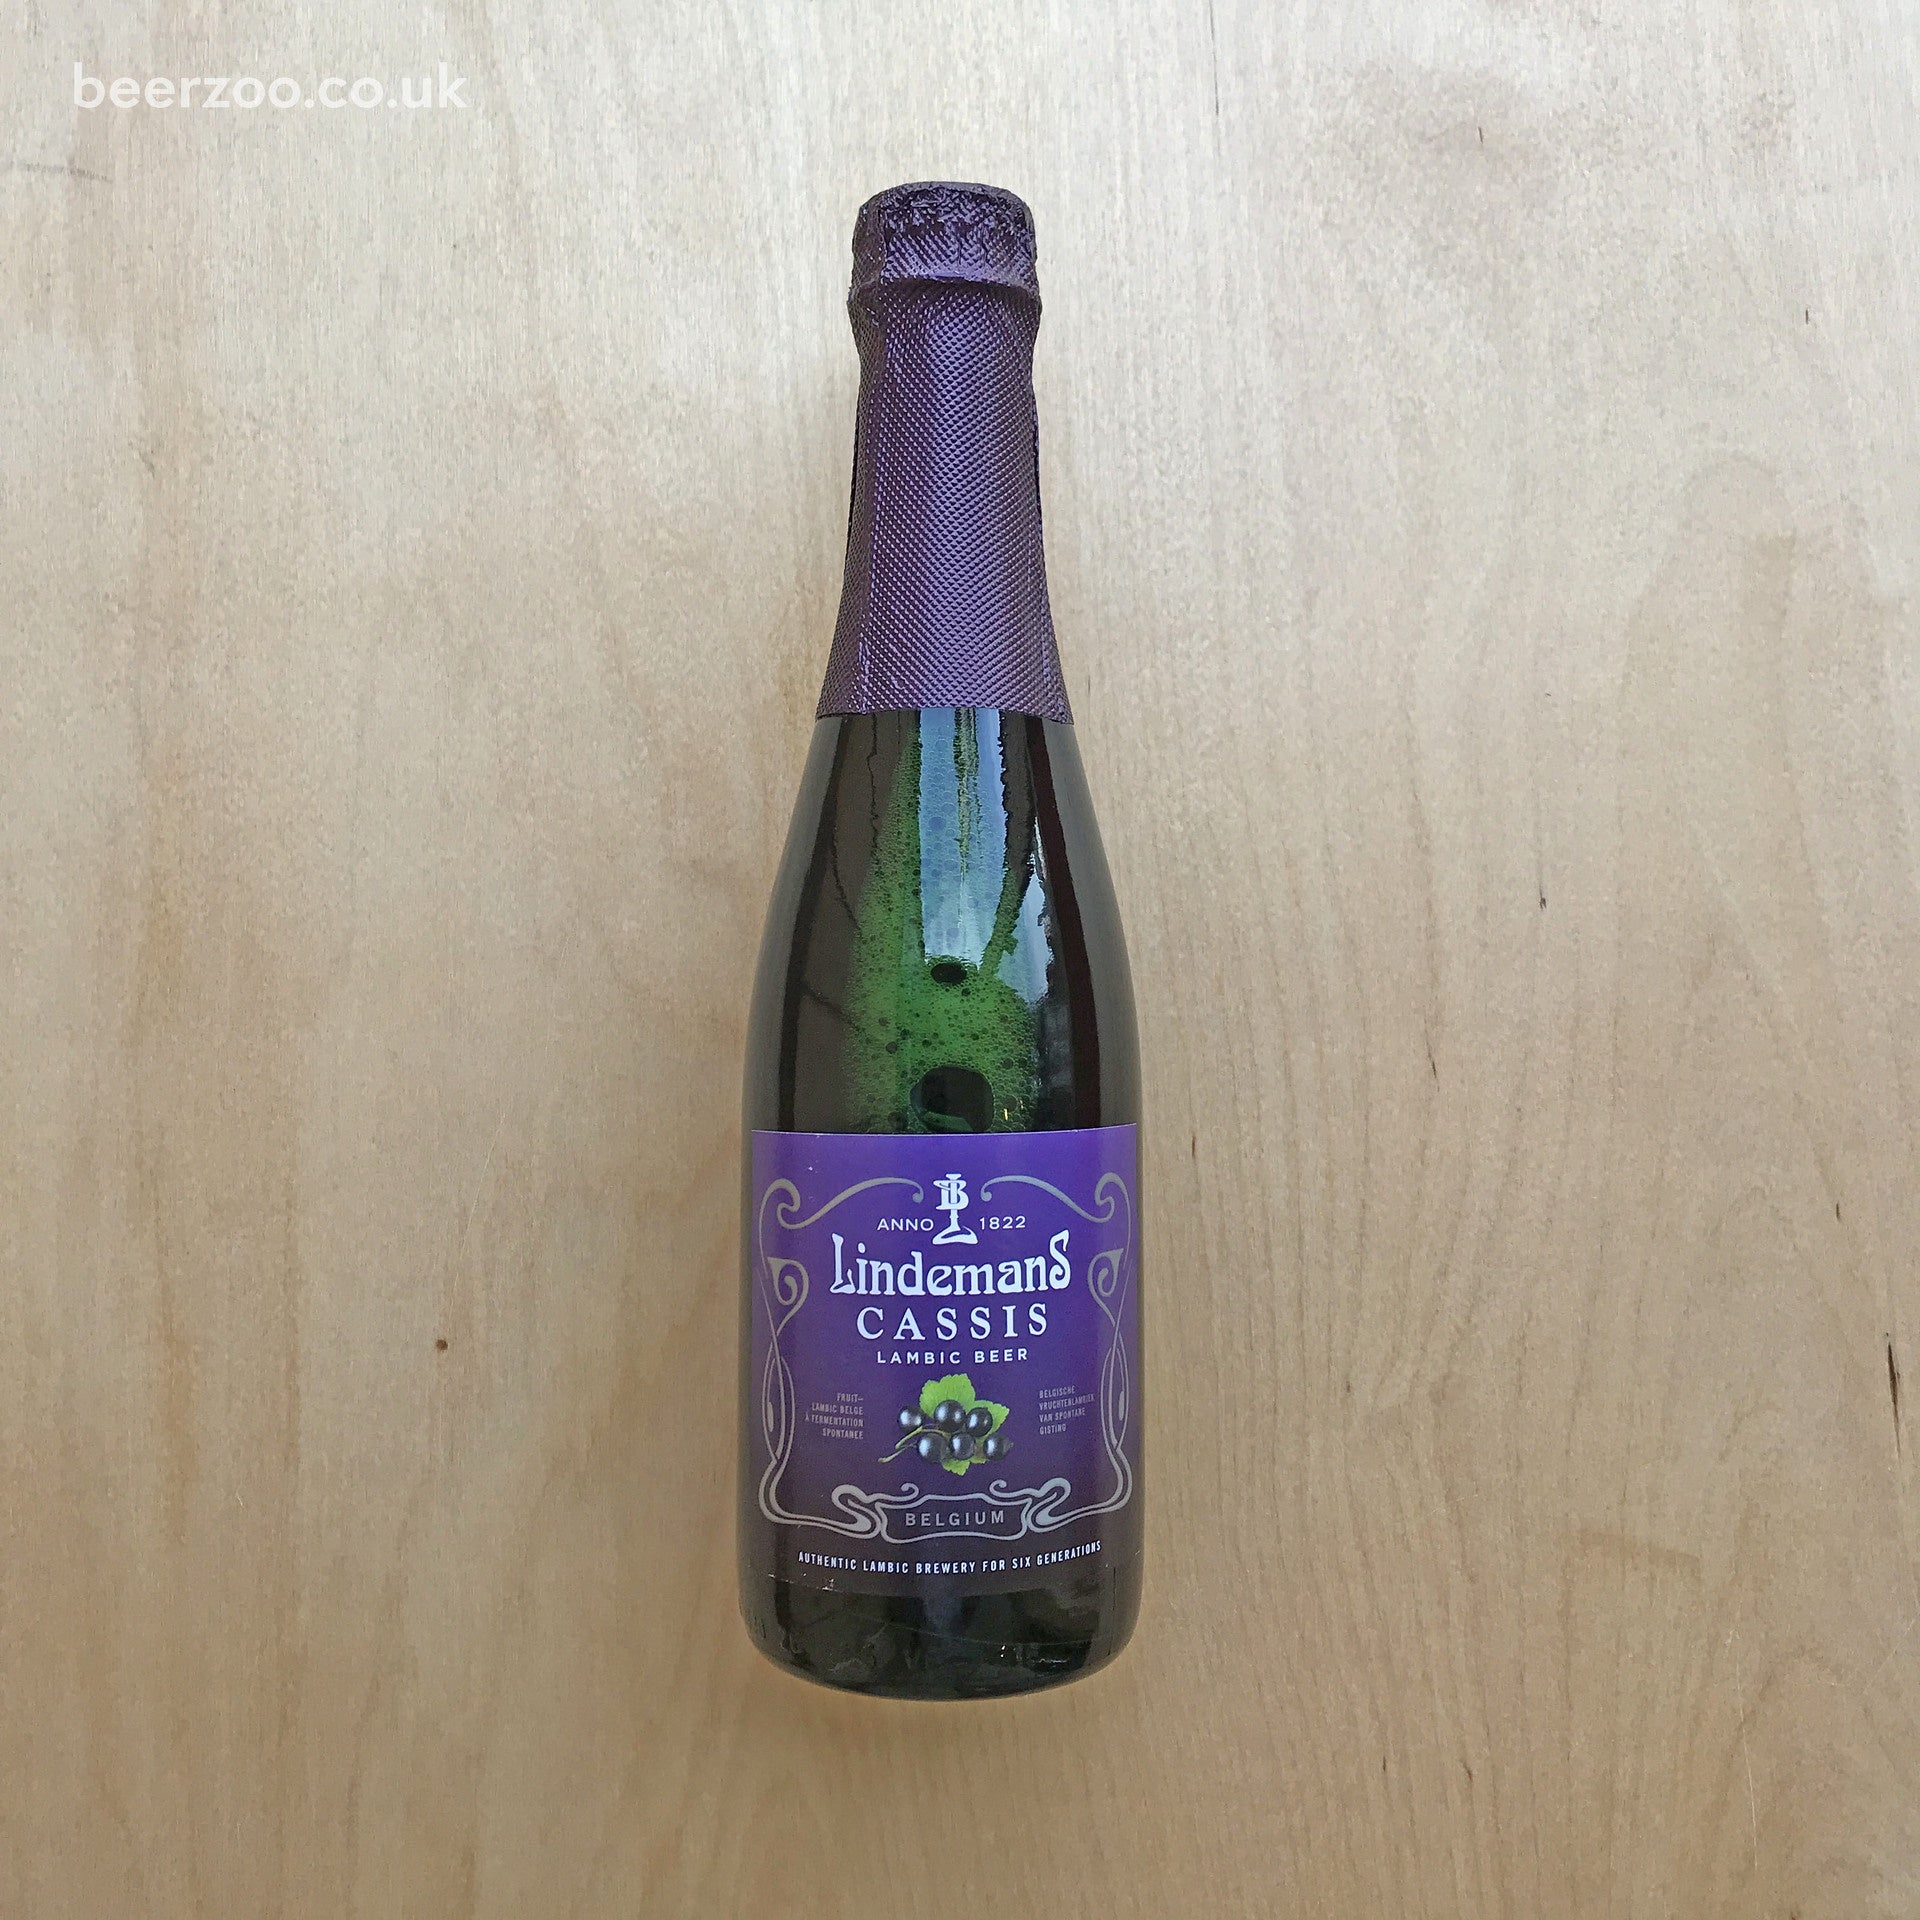 Lindemans Cassis 3.5% (375ml)